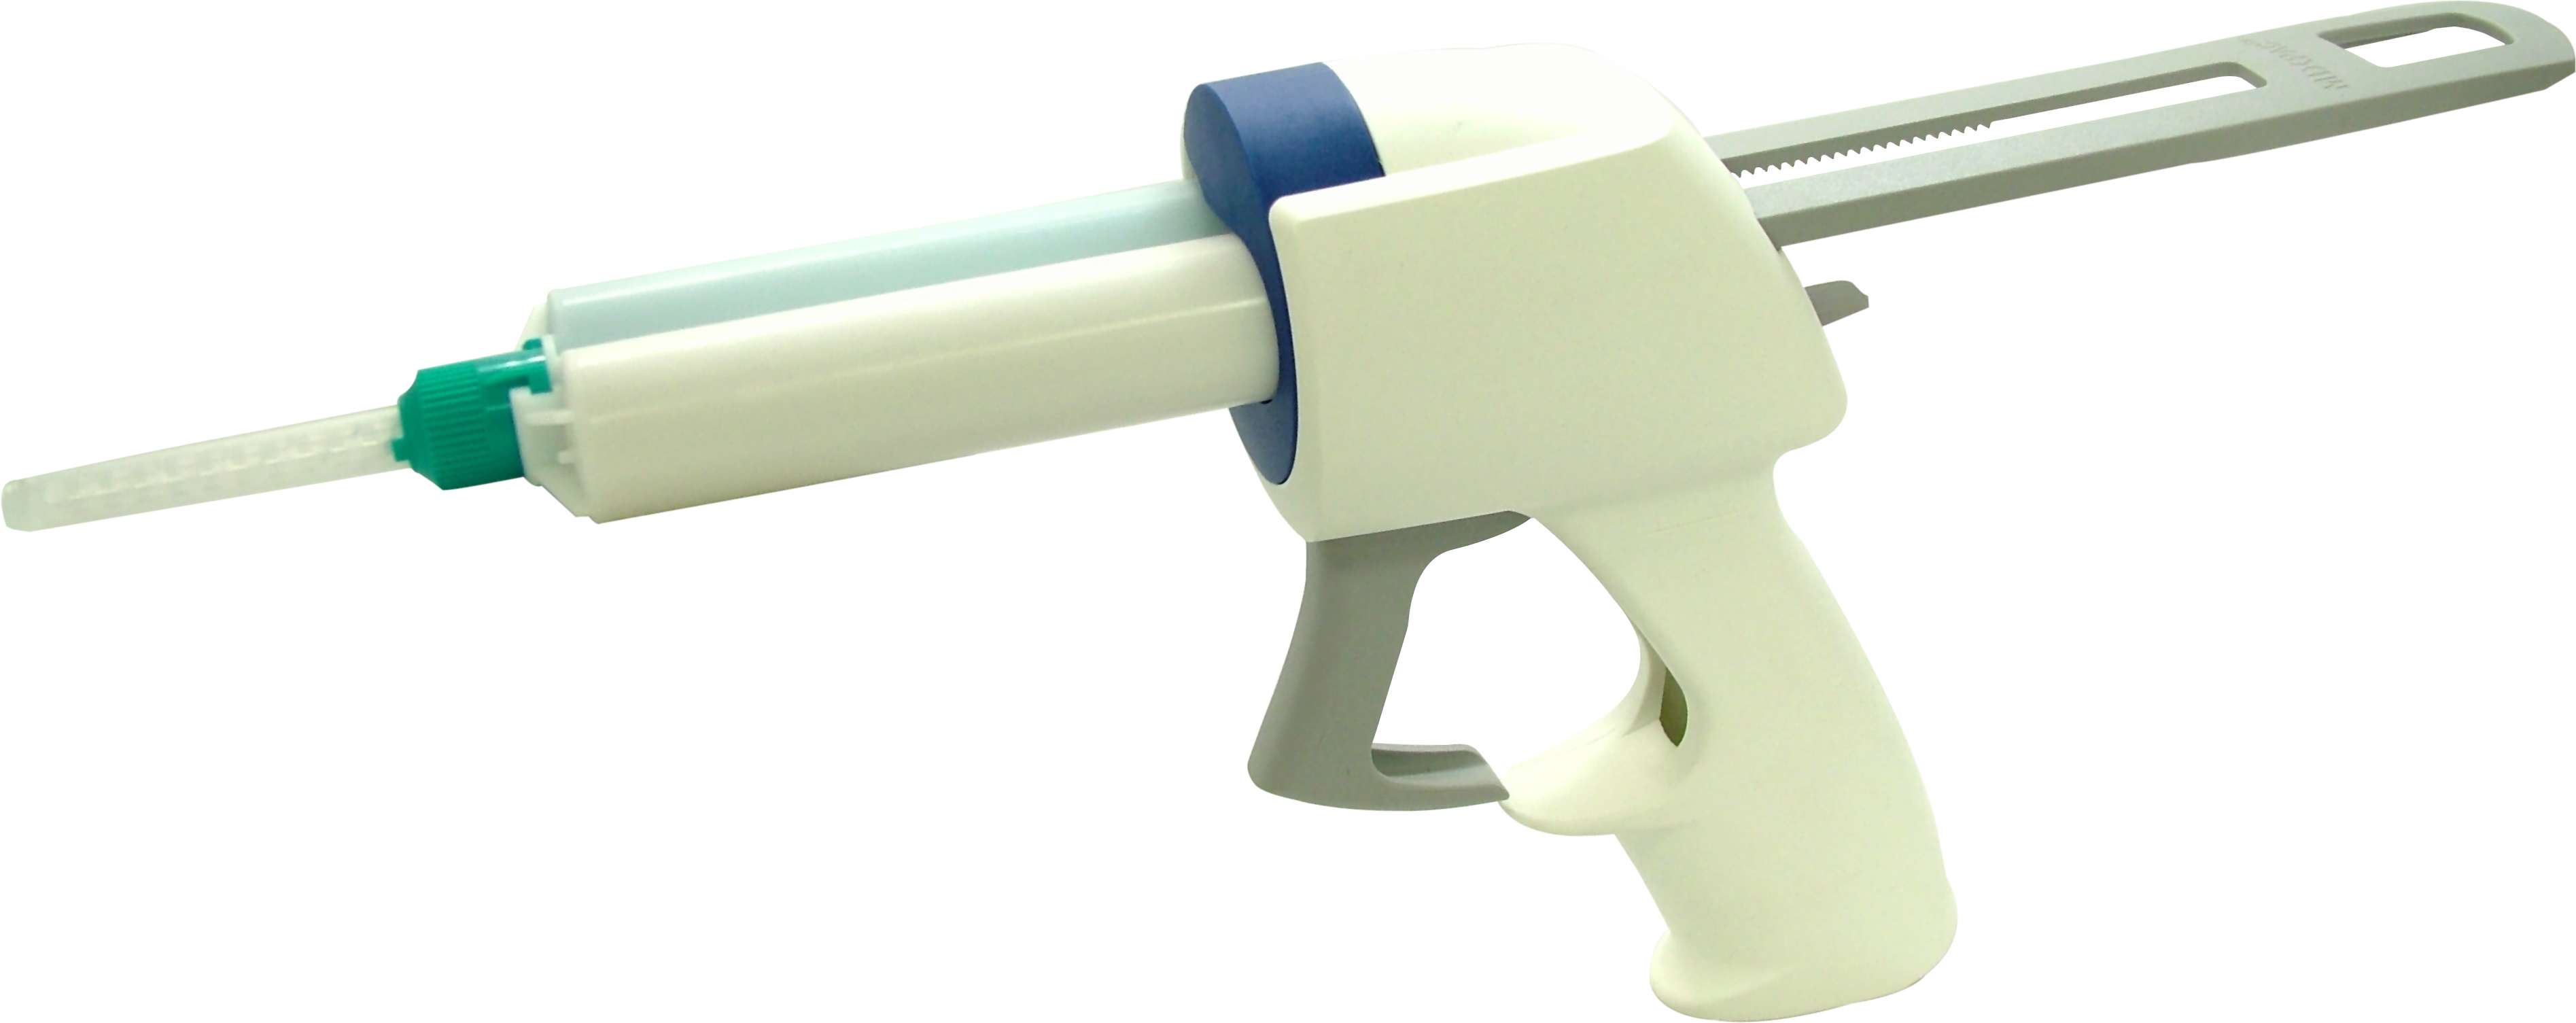 Pac-Dent Dispensing Gun